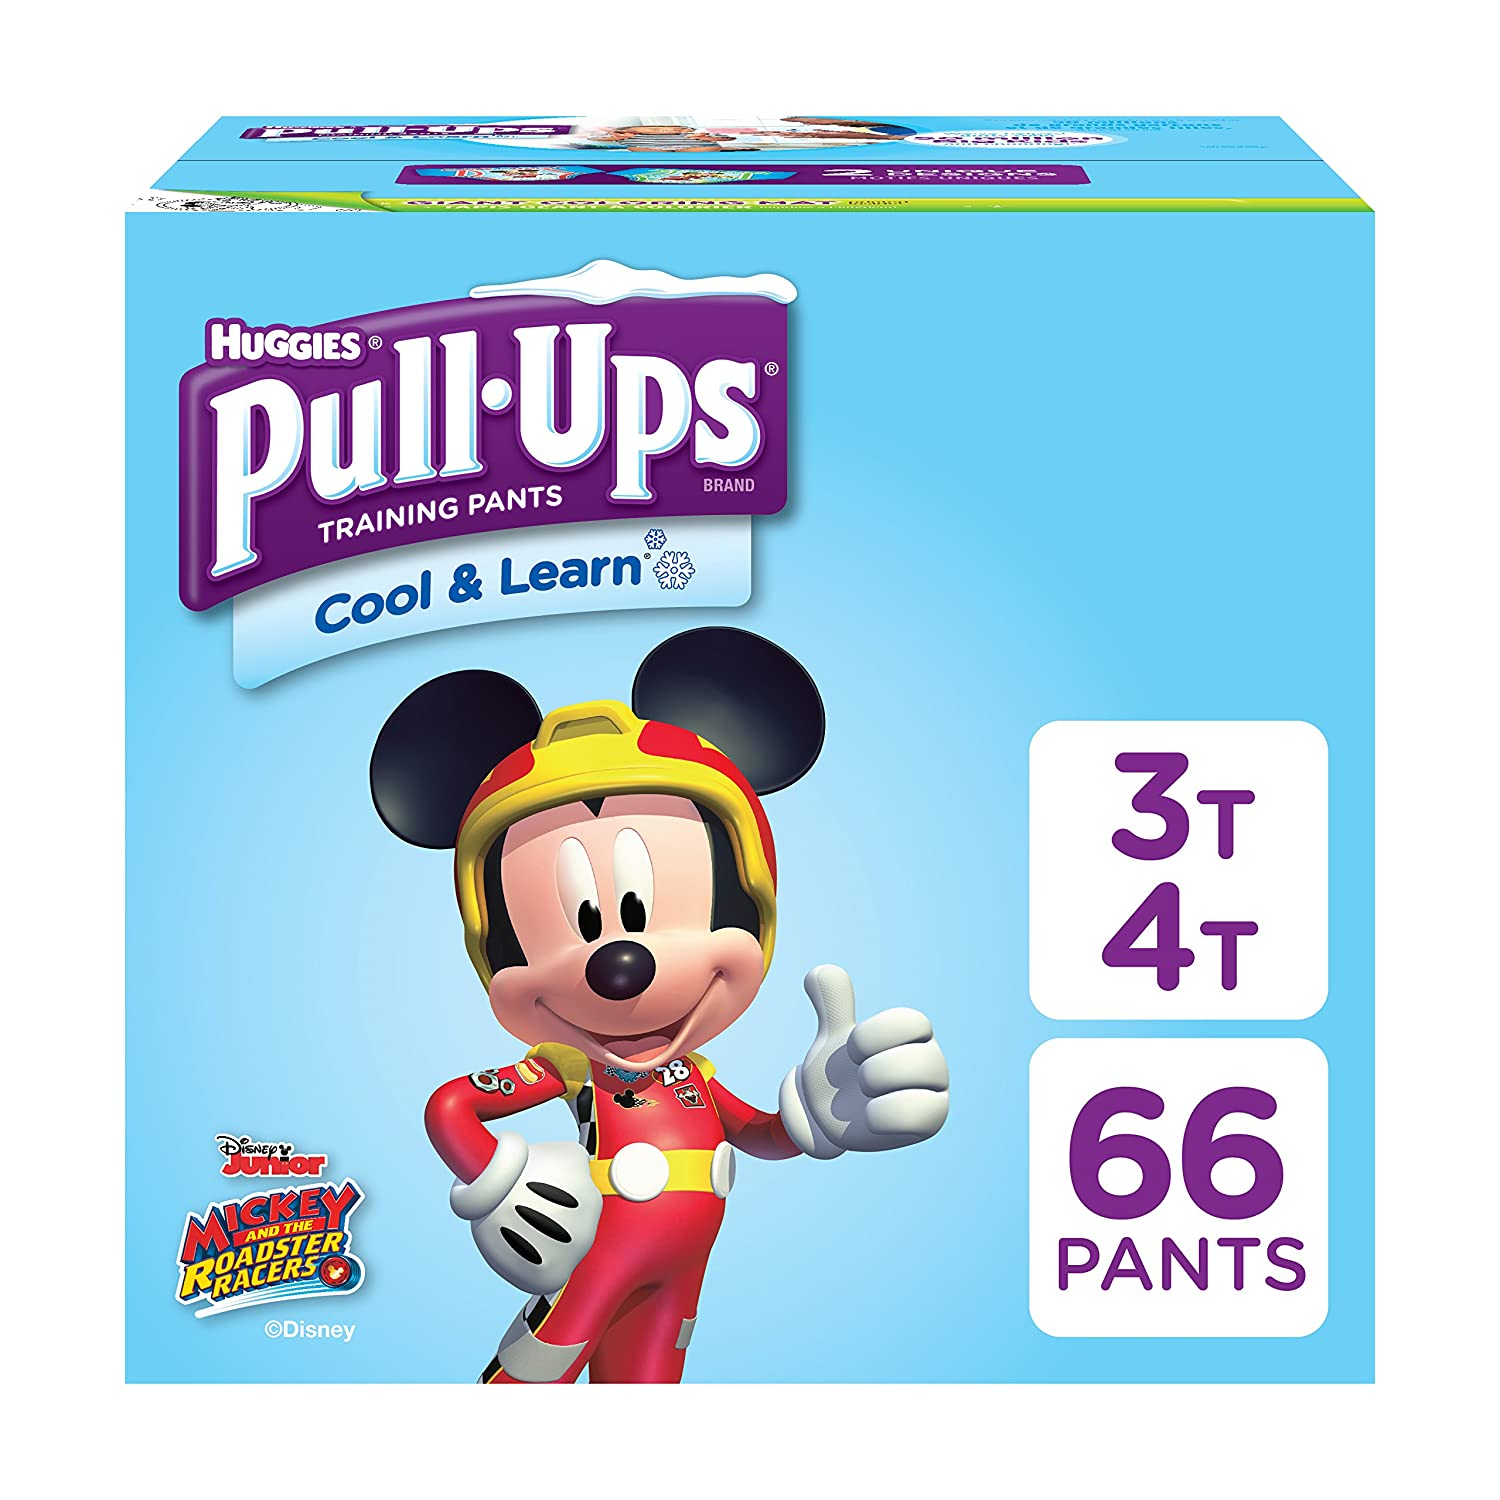 Pull-Ups Cool & Learn Potty Training Pants for Boys, 4T-5T (38-50 lb.), 56 Count Kimberly-Clark Corp. CA 45204